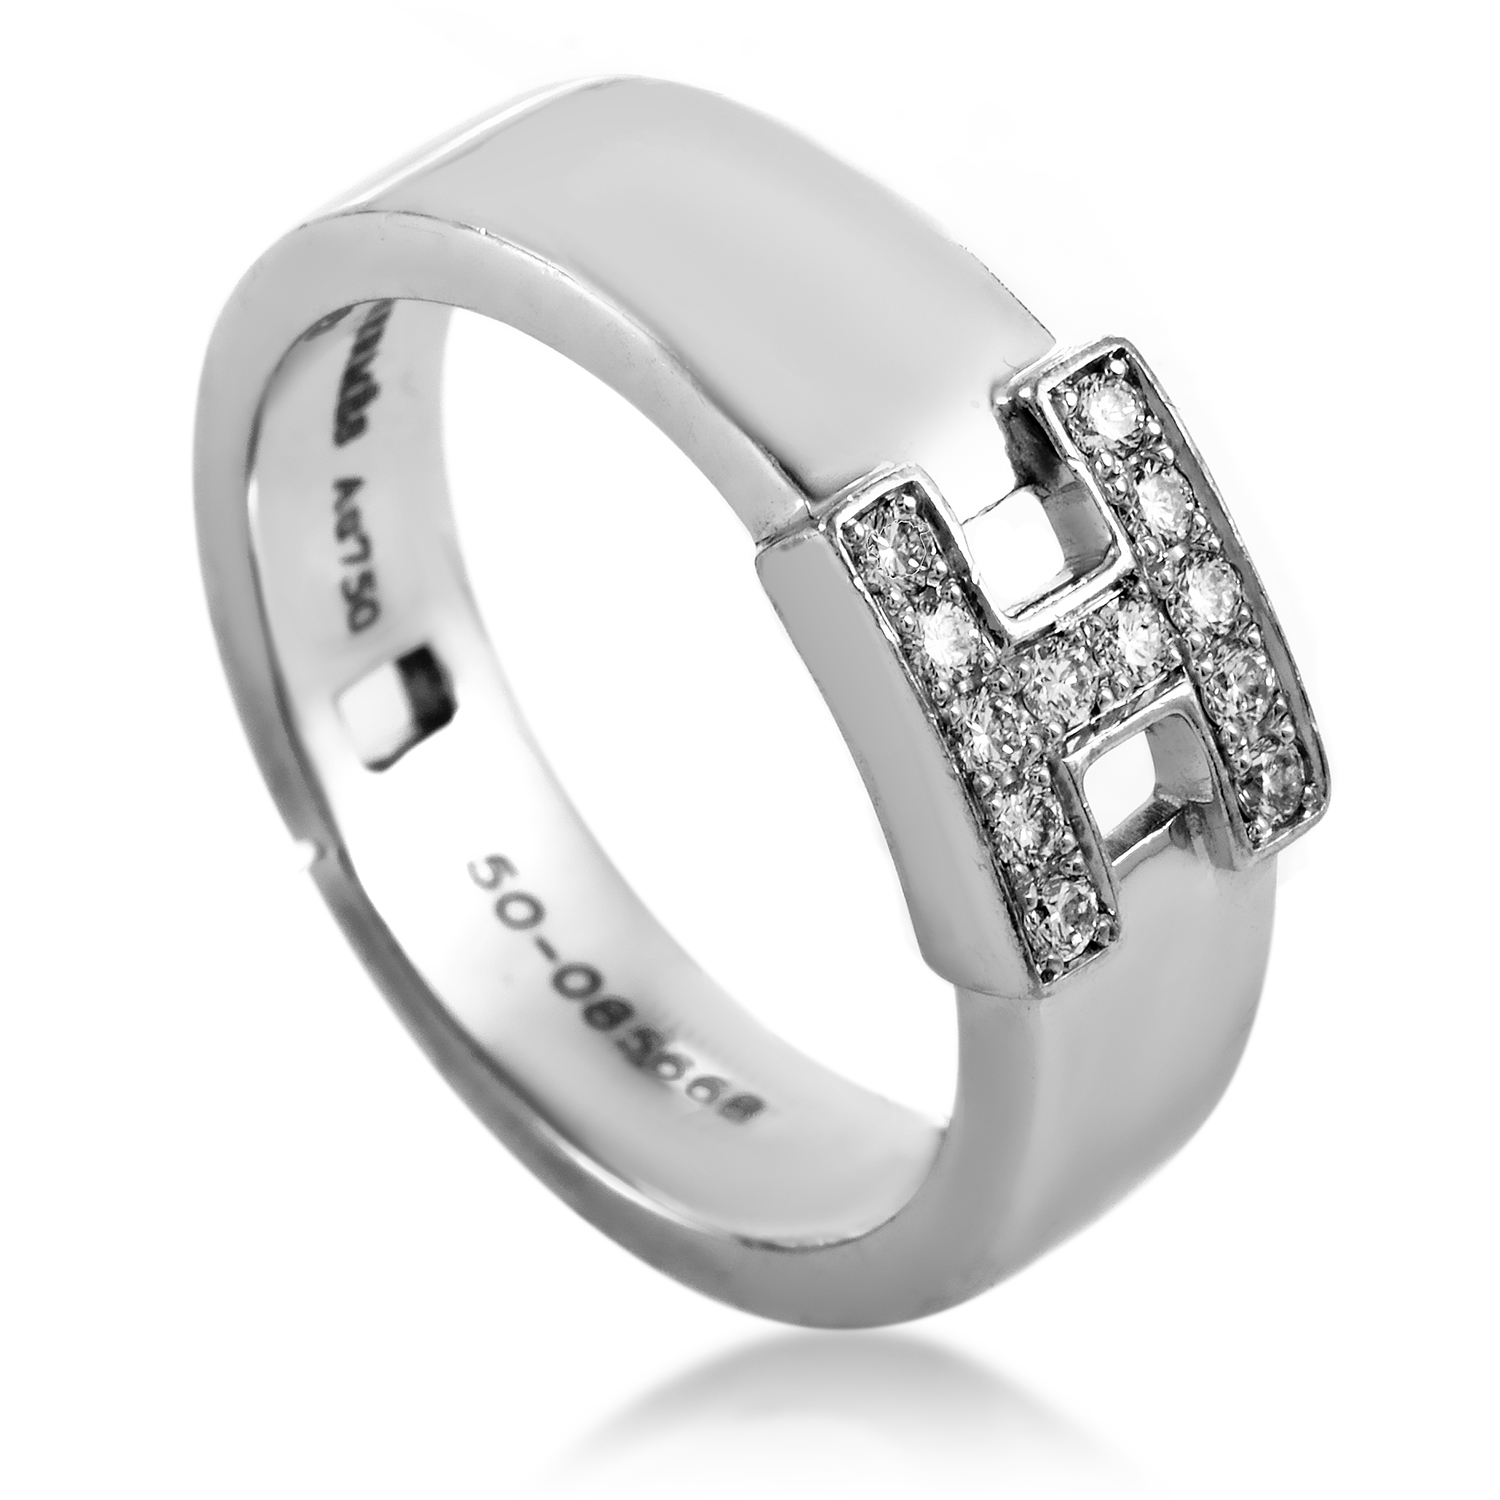 Hermès Women's 18K White Gold Diamond